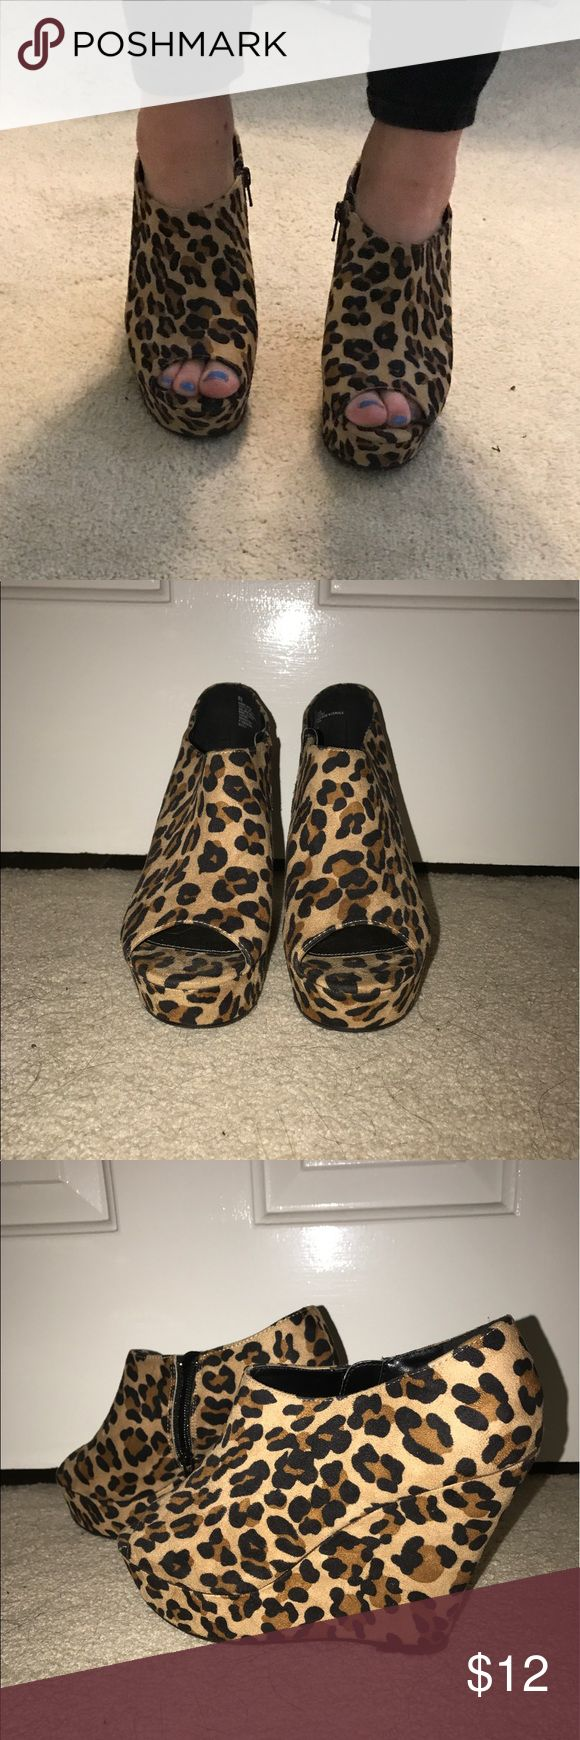 LEOPARD PRINT WEDGES Leopard print wedges. Size 9. Only worn once. No visible wear to them. Peep toe and low on the ankle. Zipper in the back for easy put on. Heels are about 3.5-4 inches tall. Mossimo Supply Co Shoes Wedges